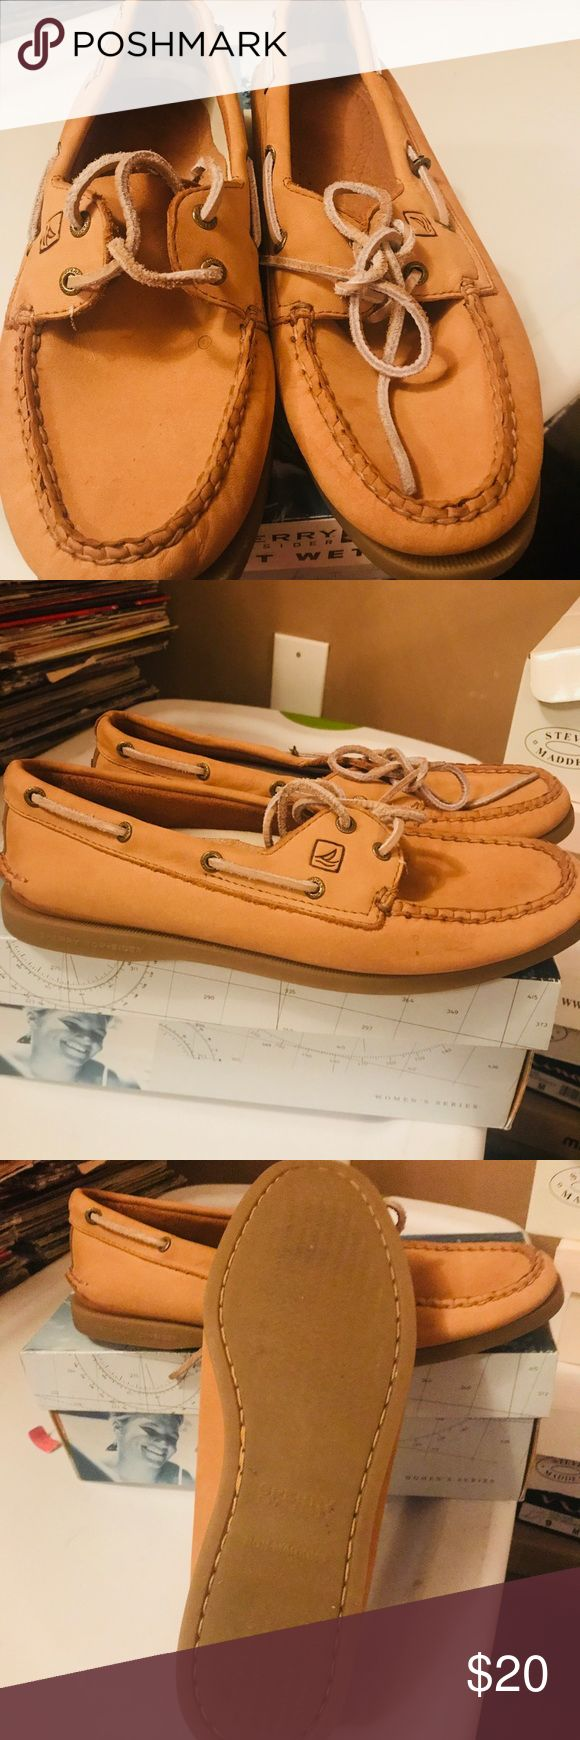 Sperry boat shoes tan size 8.5 Sperry boat shoes tan size 8.5 worn twice they are two big for me. Sperry Top-Sider Shoes Flats & Loafers